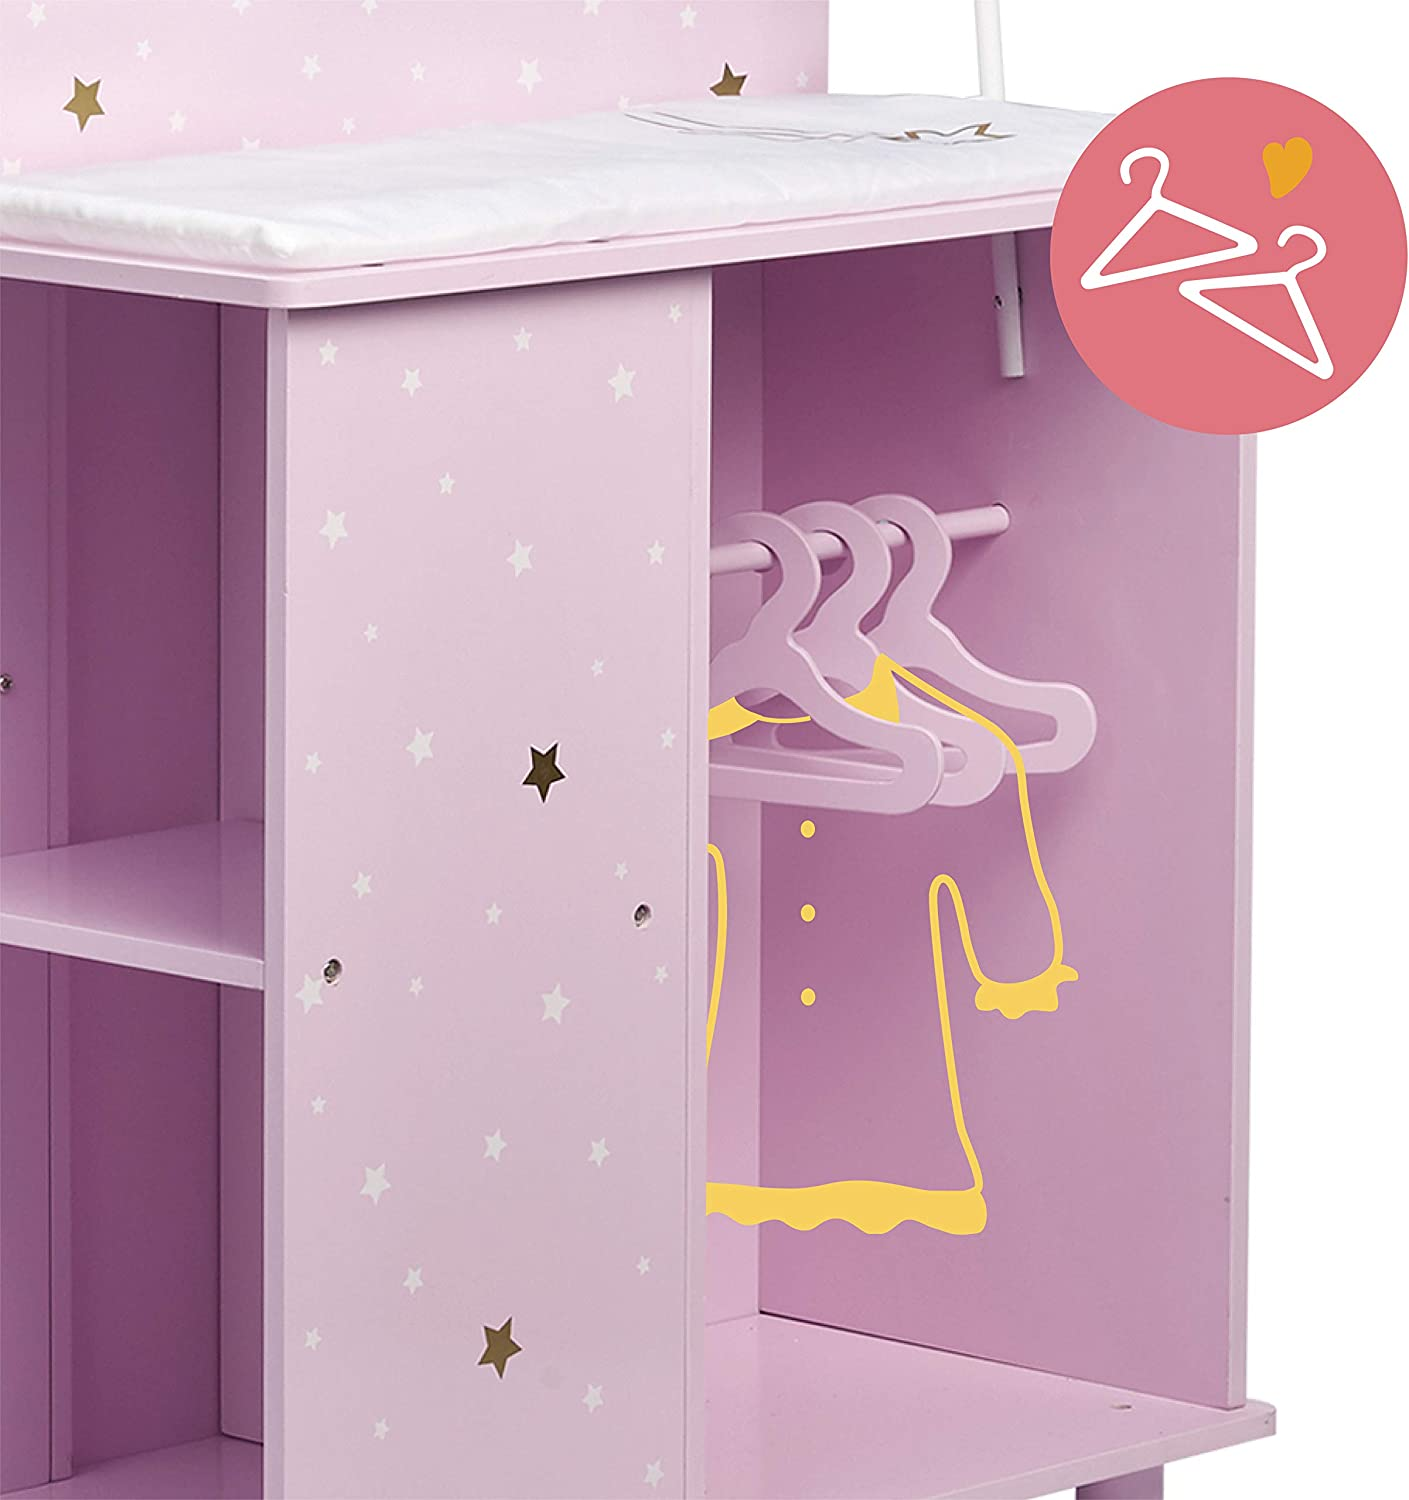 Olivia's Little World - Polka Dots Princess Baby Doll Changing Station, Baby Care Activity Center, Role Play Nursery Center with Storage for Dolls Accessories - Pink & Gray